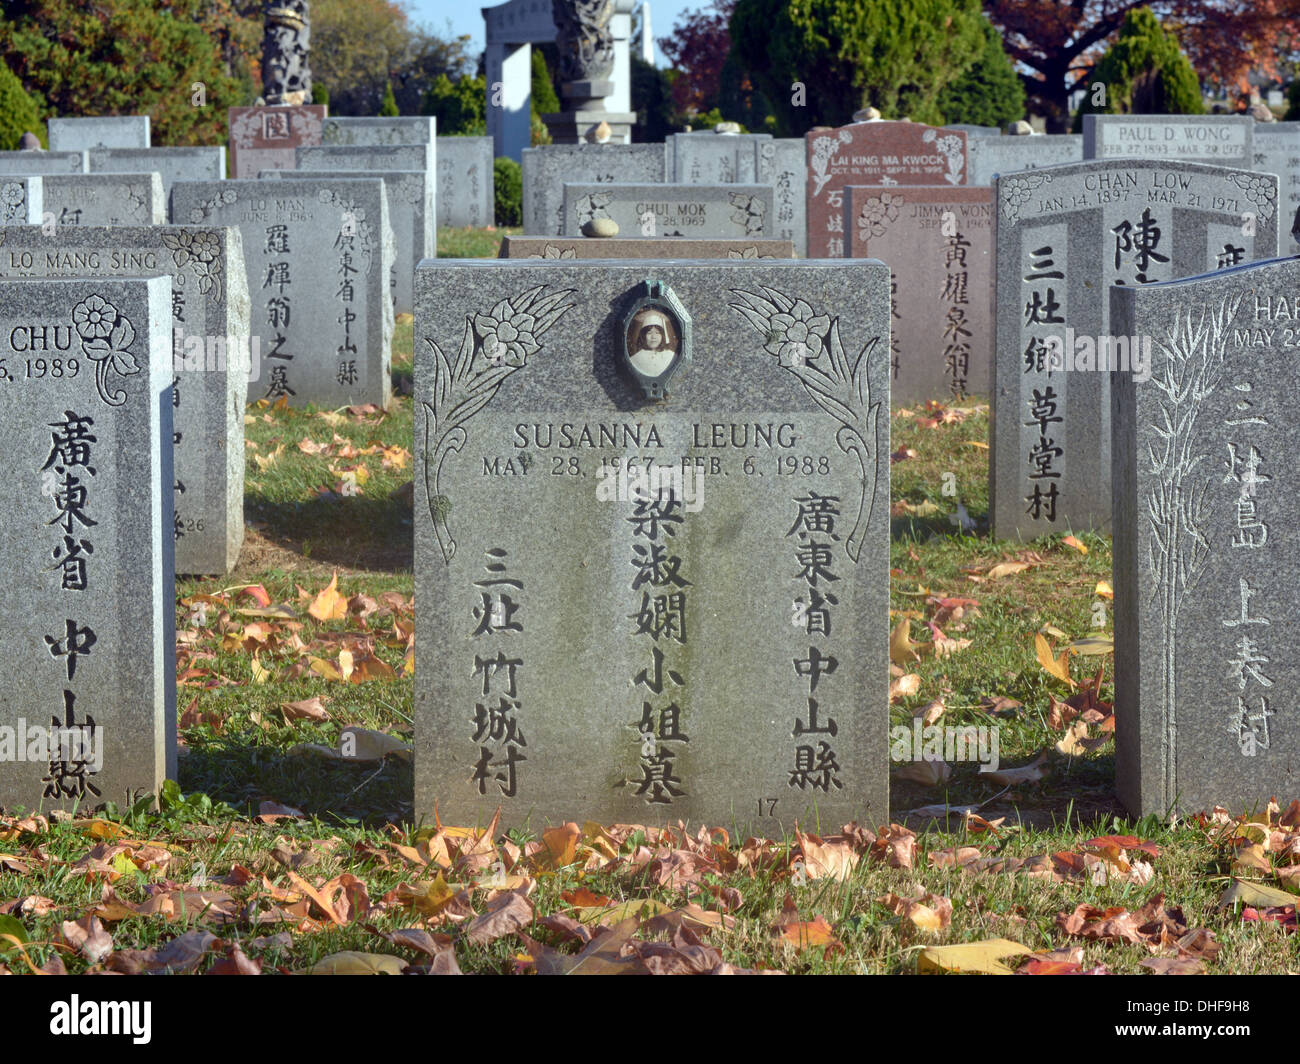 Asian tombstone of a deceased young lady in Cypress Hills Cemetery in Queens, New York - Stock Image